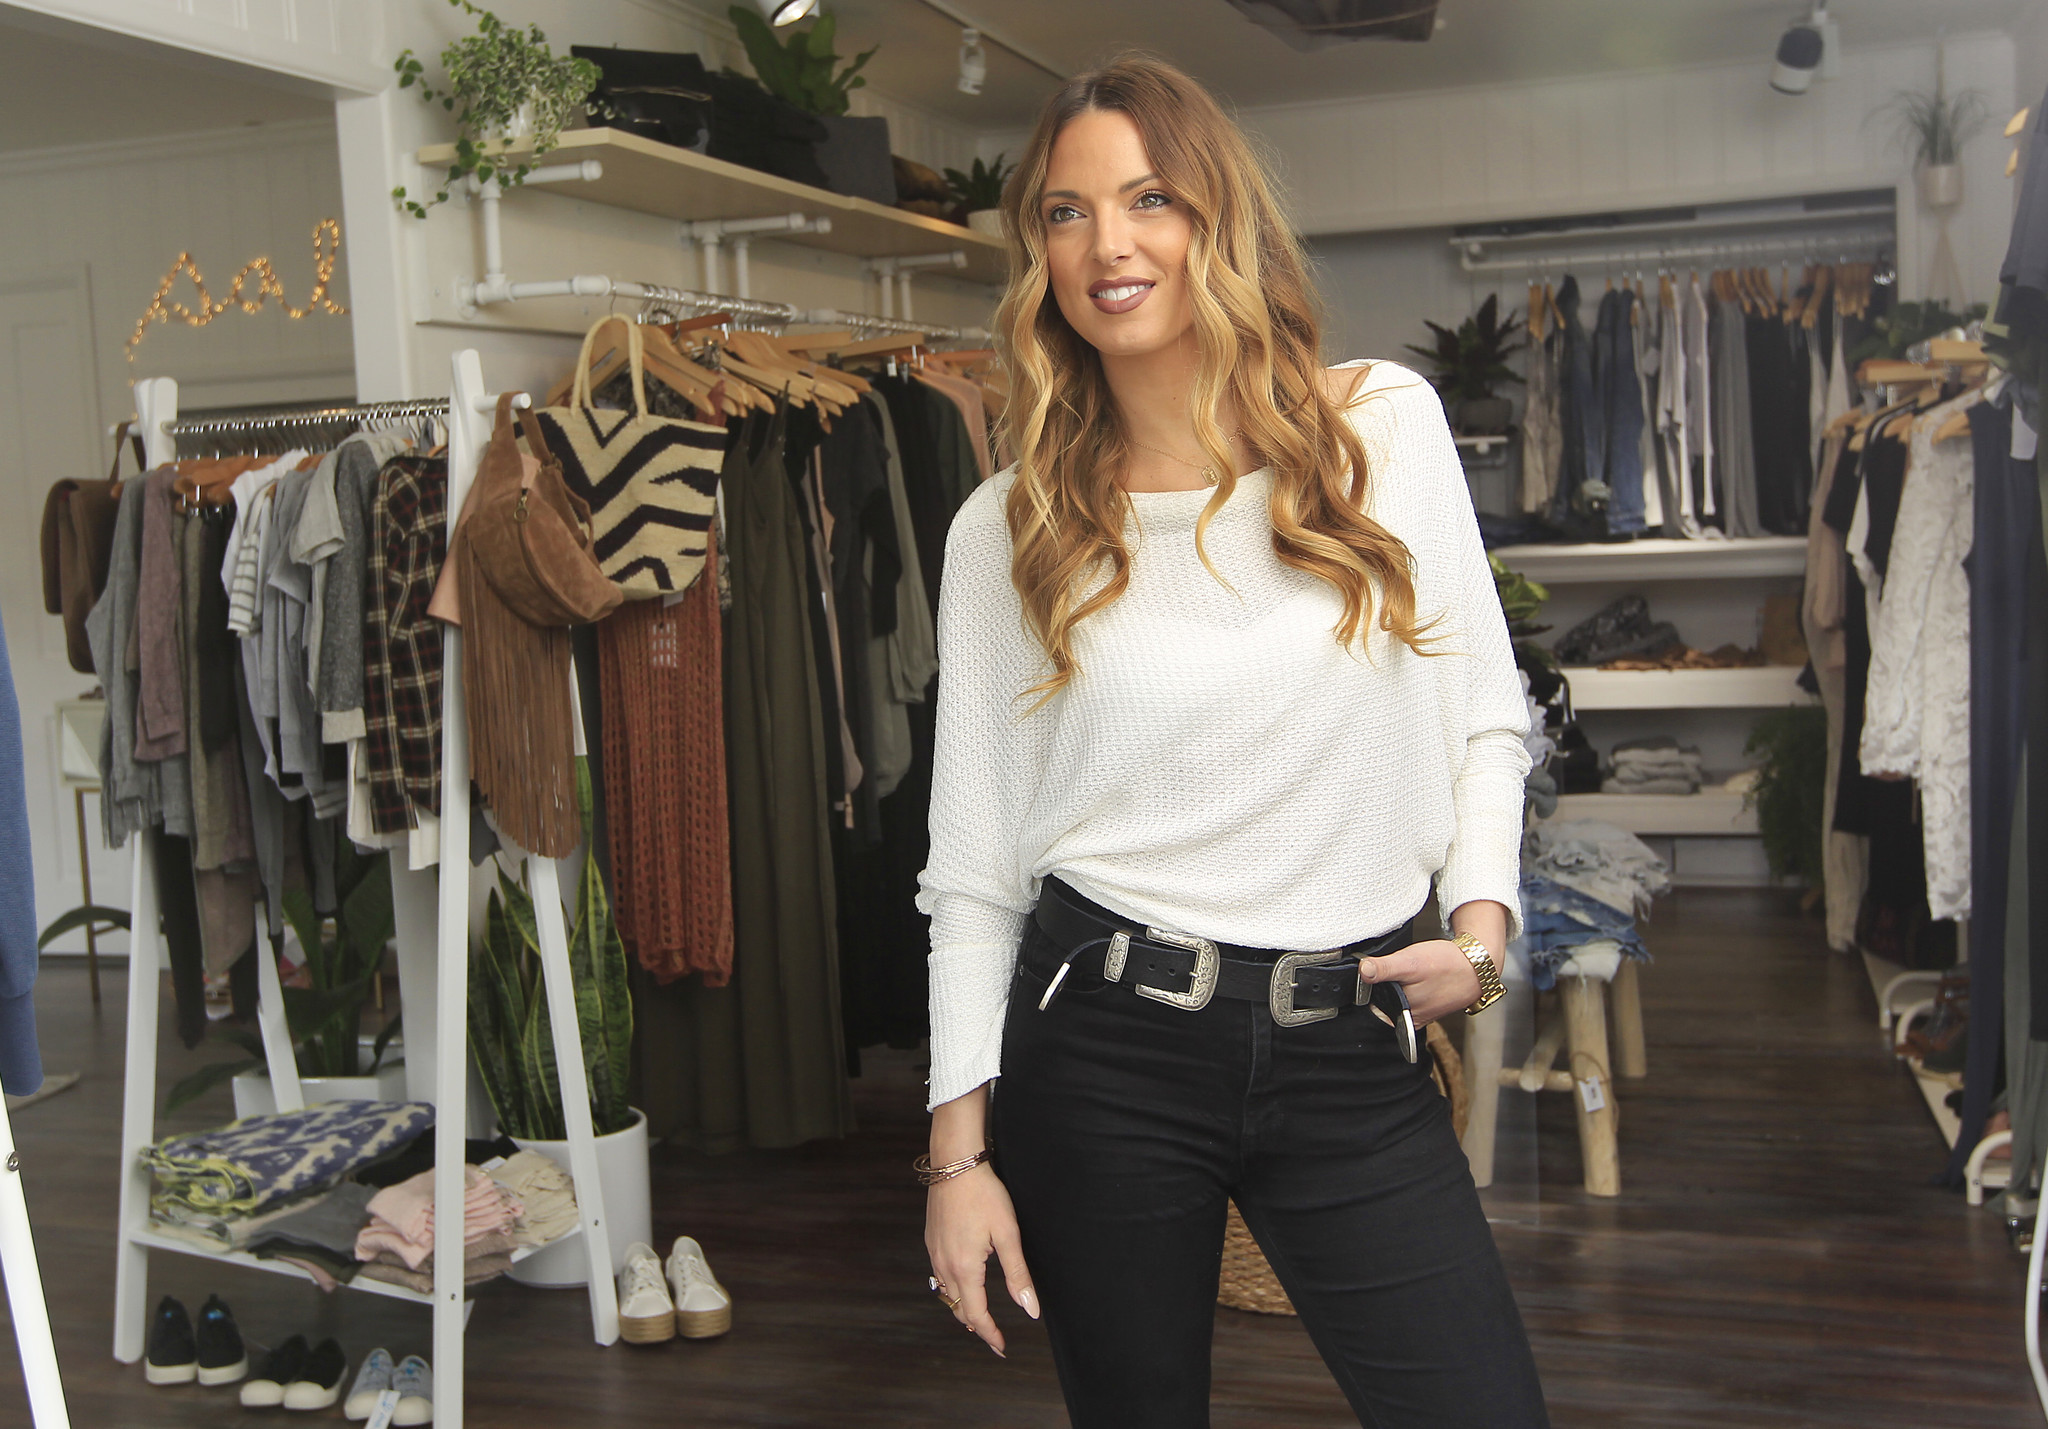 Rob Machado's wife opens global boutique